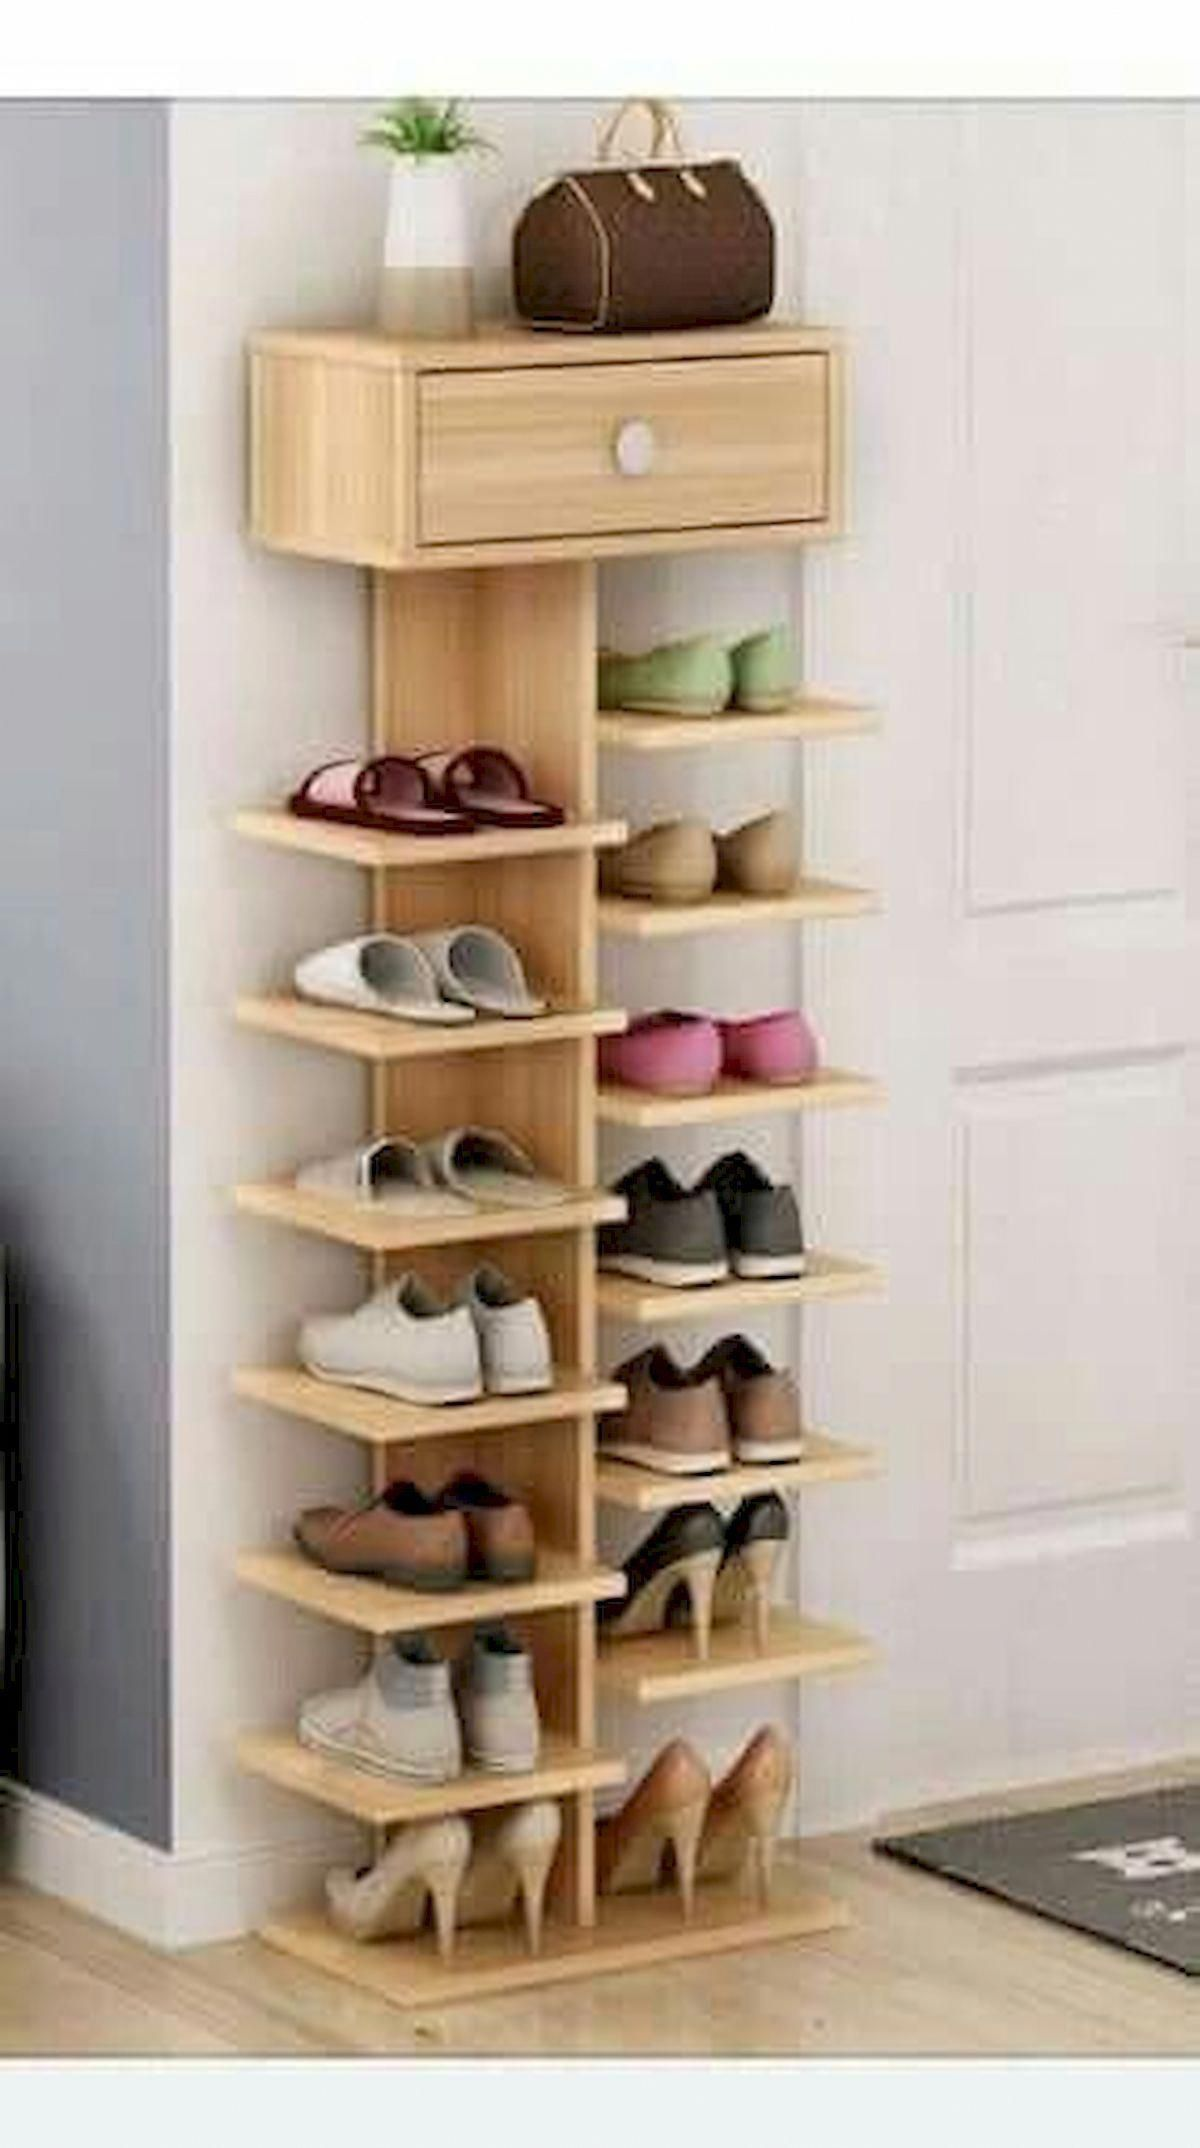 Exceptional Smart Home Decor Advice Info Are Readily Available On Our Site Check It Out And You Wont Be Sorry You Did H Diy Closet Diy Furniture Diy Storage